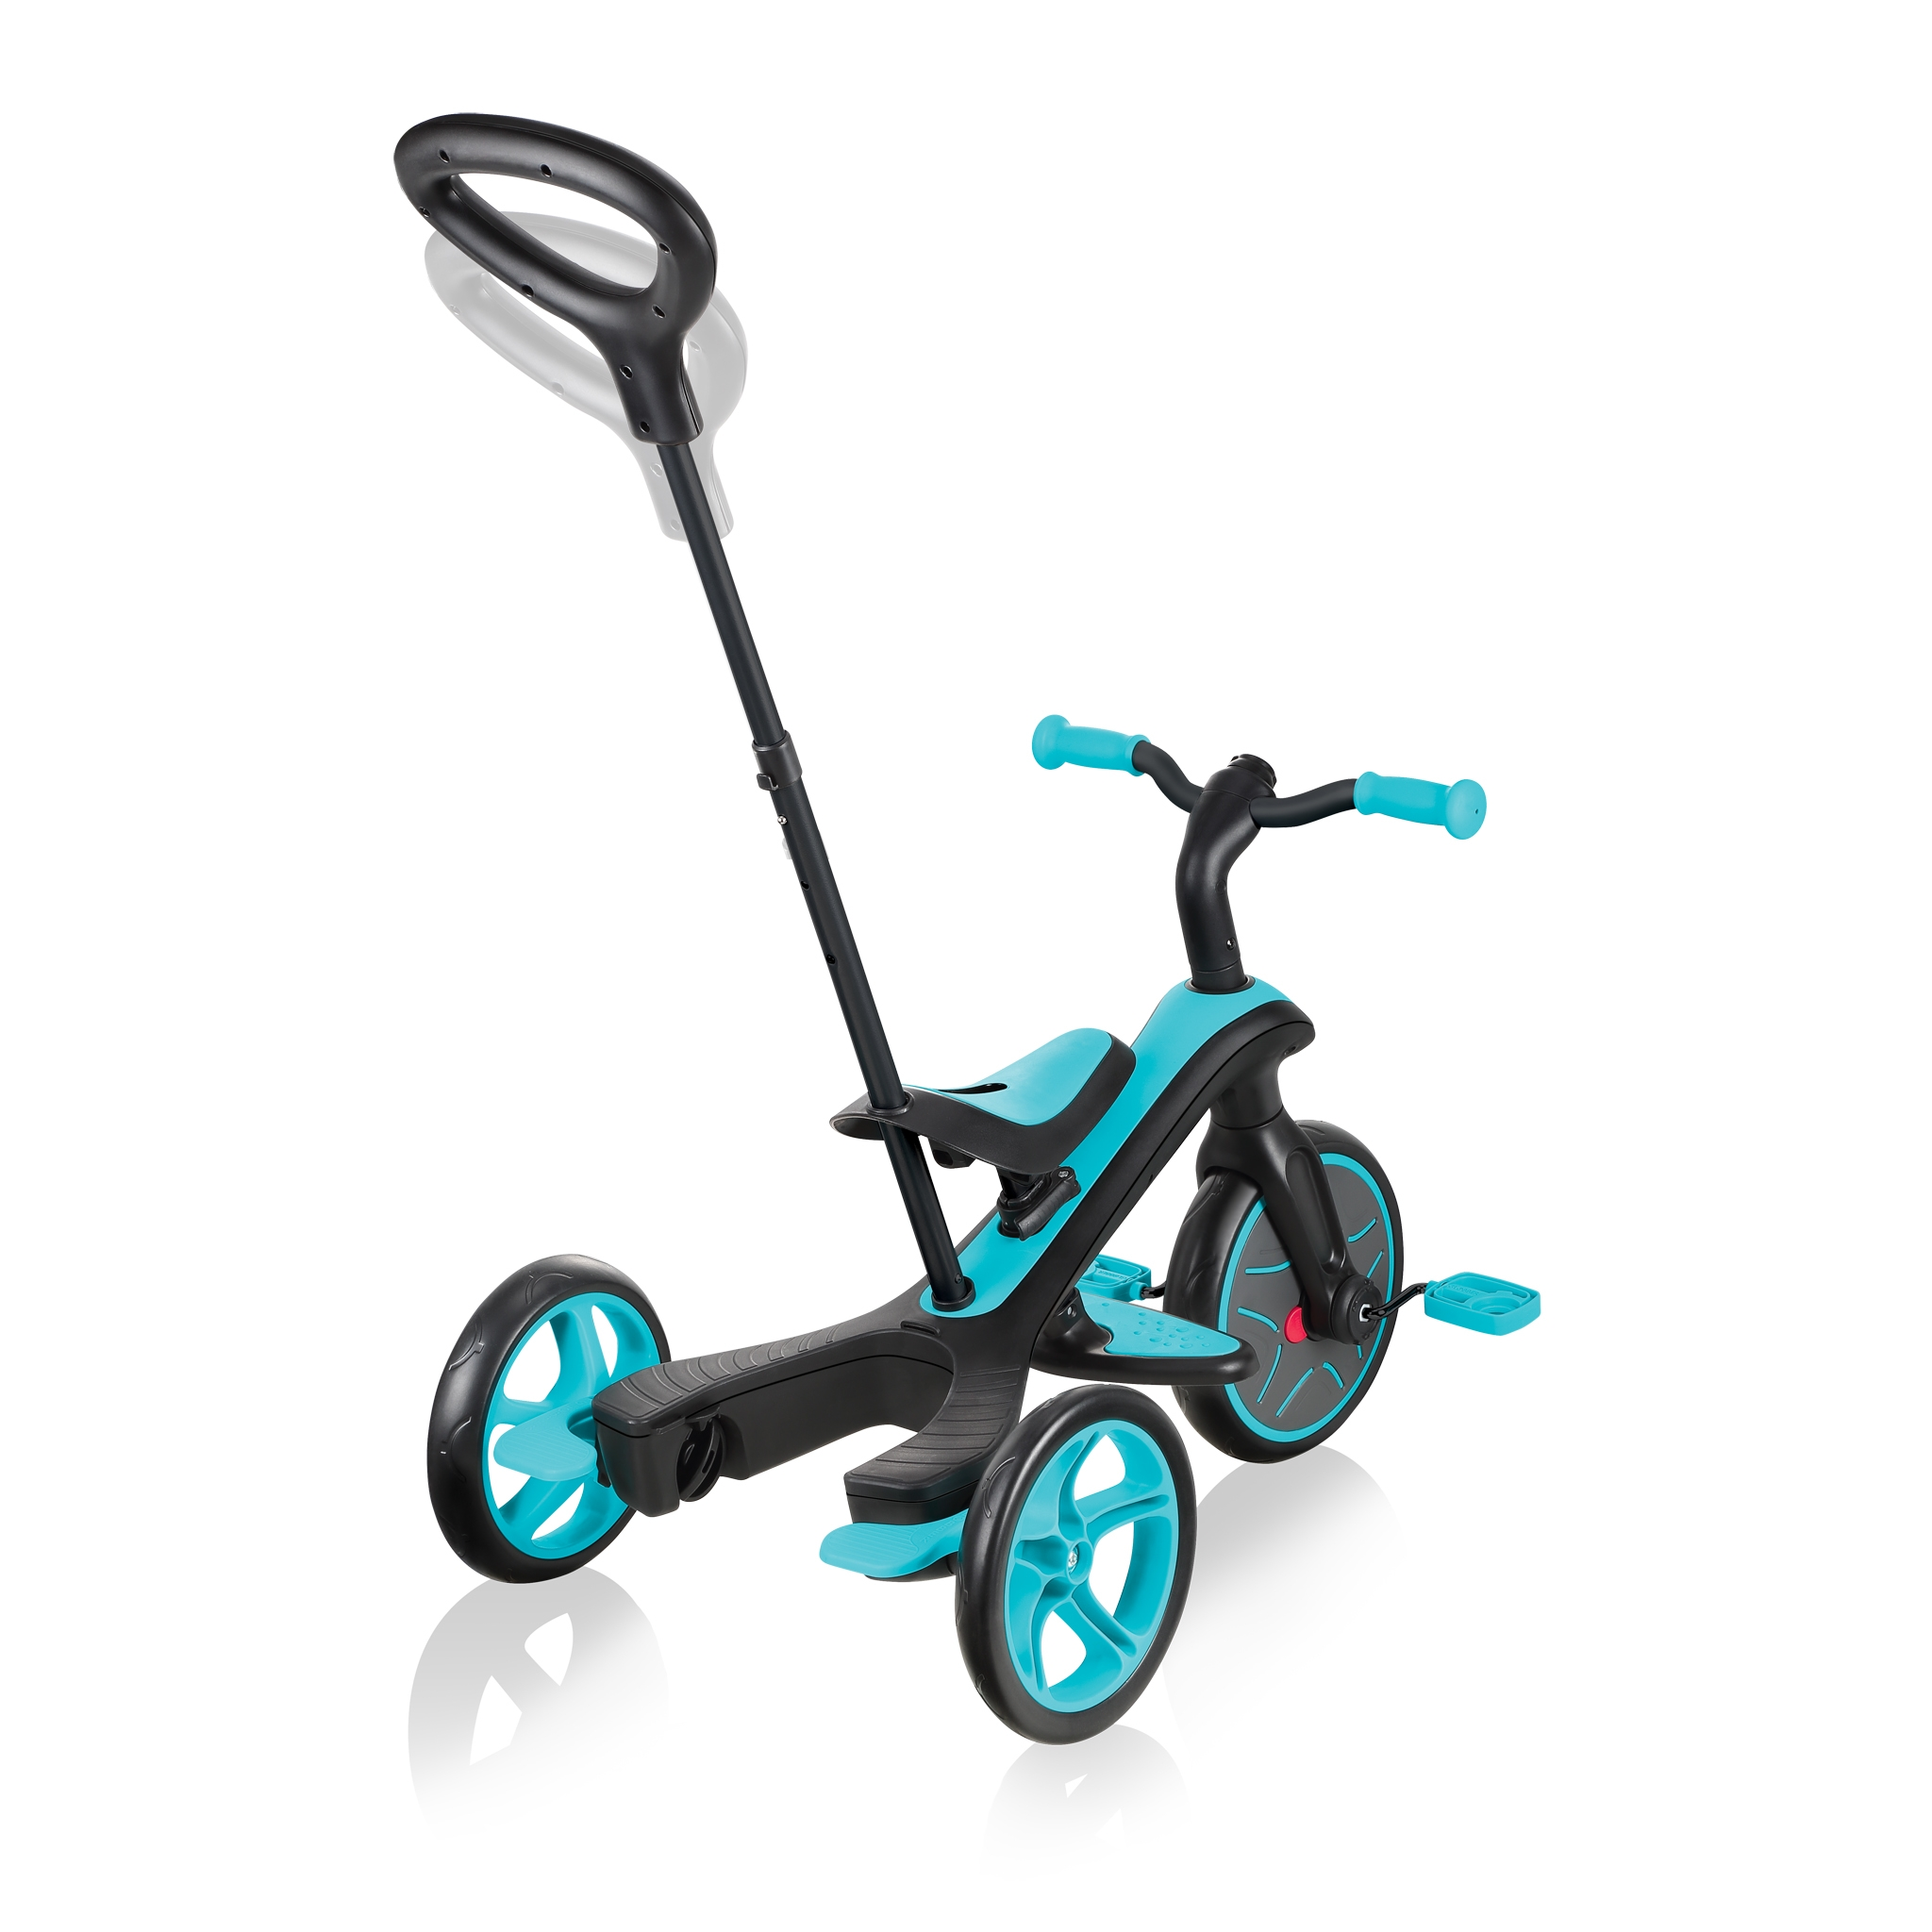 Globber-EXPLORER-TRIKE-3in1-all-in-one-baby-tricycle-and-kids-balance-bike-with-2-height-adjustable-parent-handle_teal 4